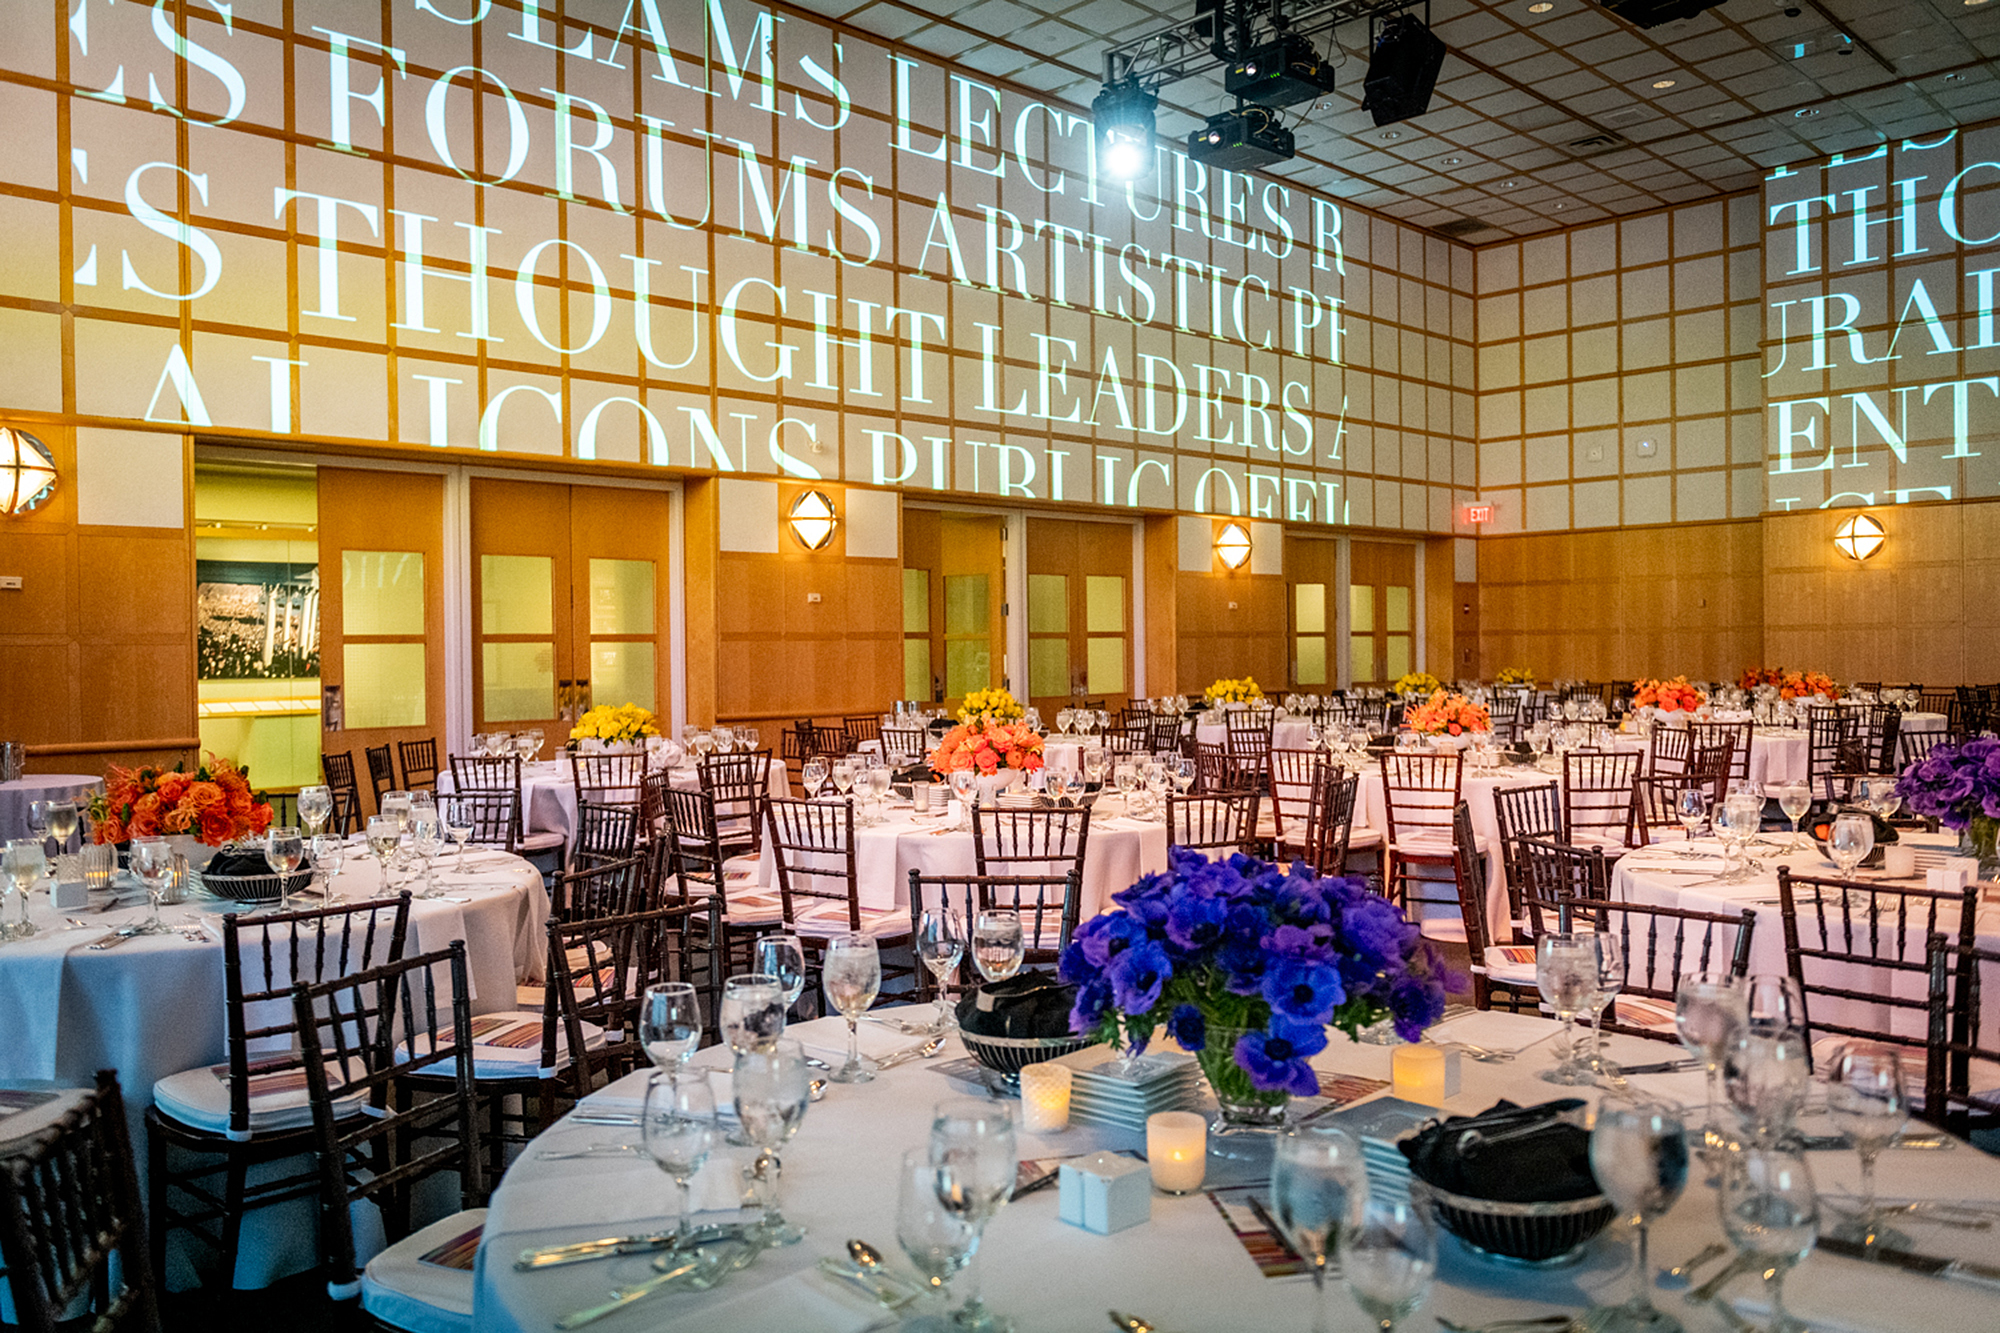 00_Non Profit WBUR Gala Projection Mapping_AE Events.jpg